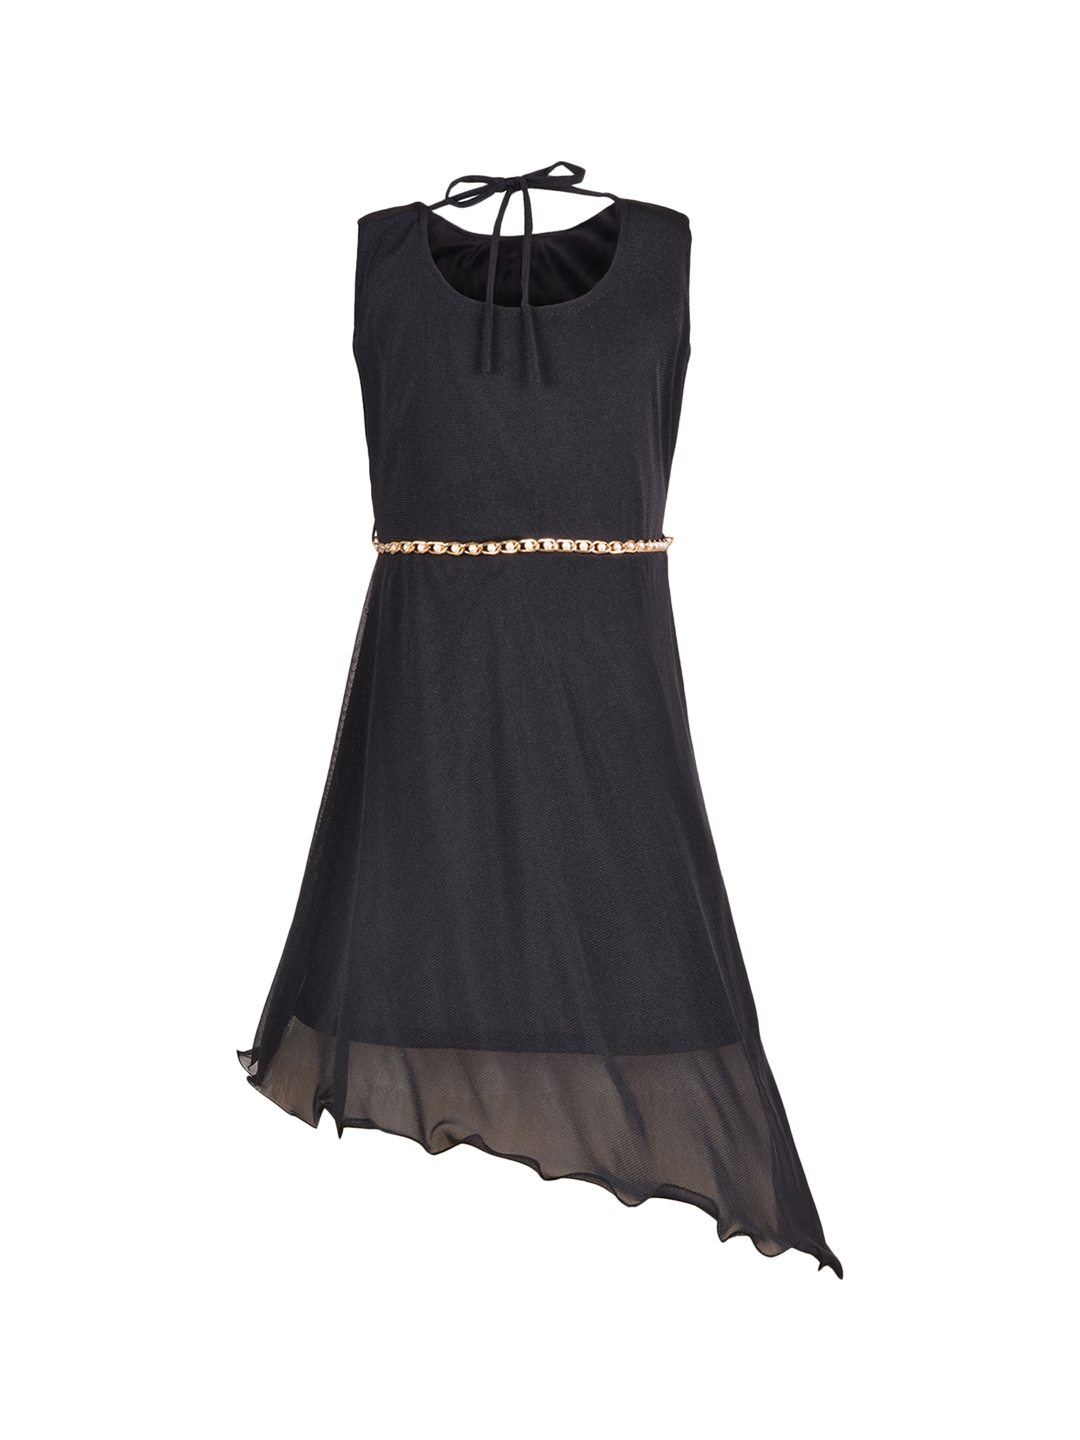 86c953eca Buy Aarika Girls Black Solid Fit And Flare Dress - Dresses for Girls ...